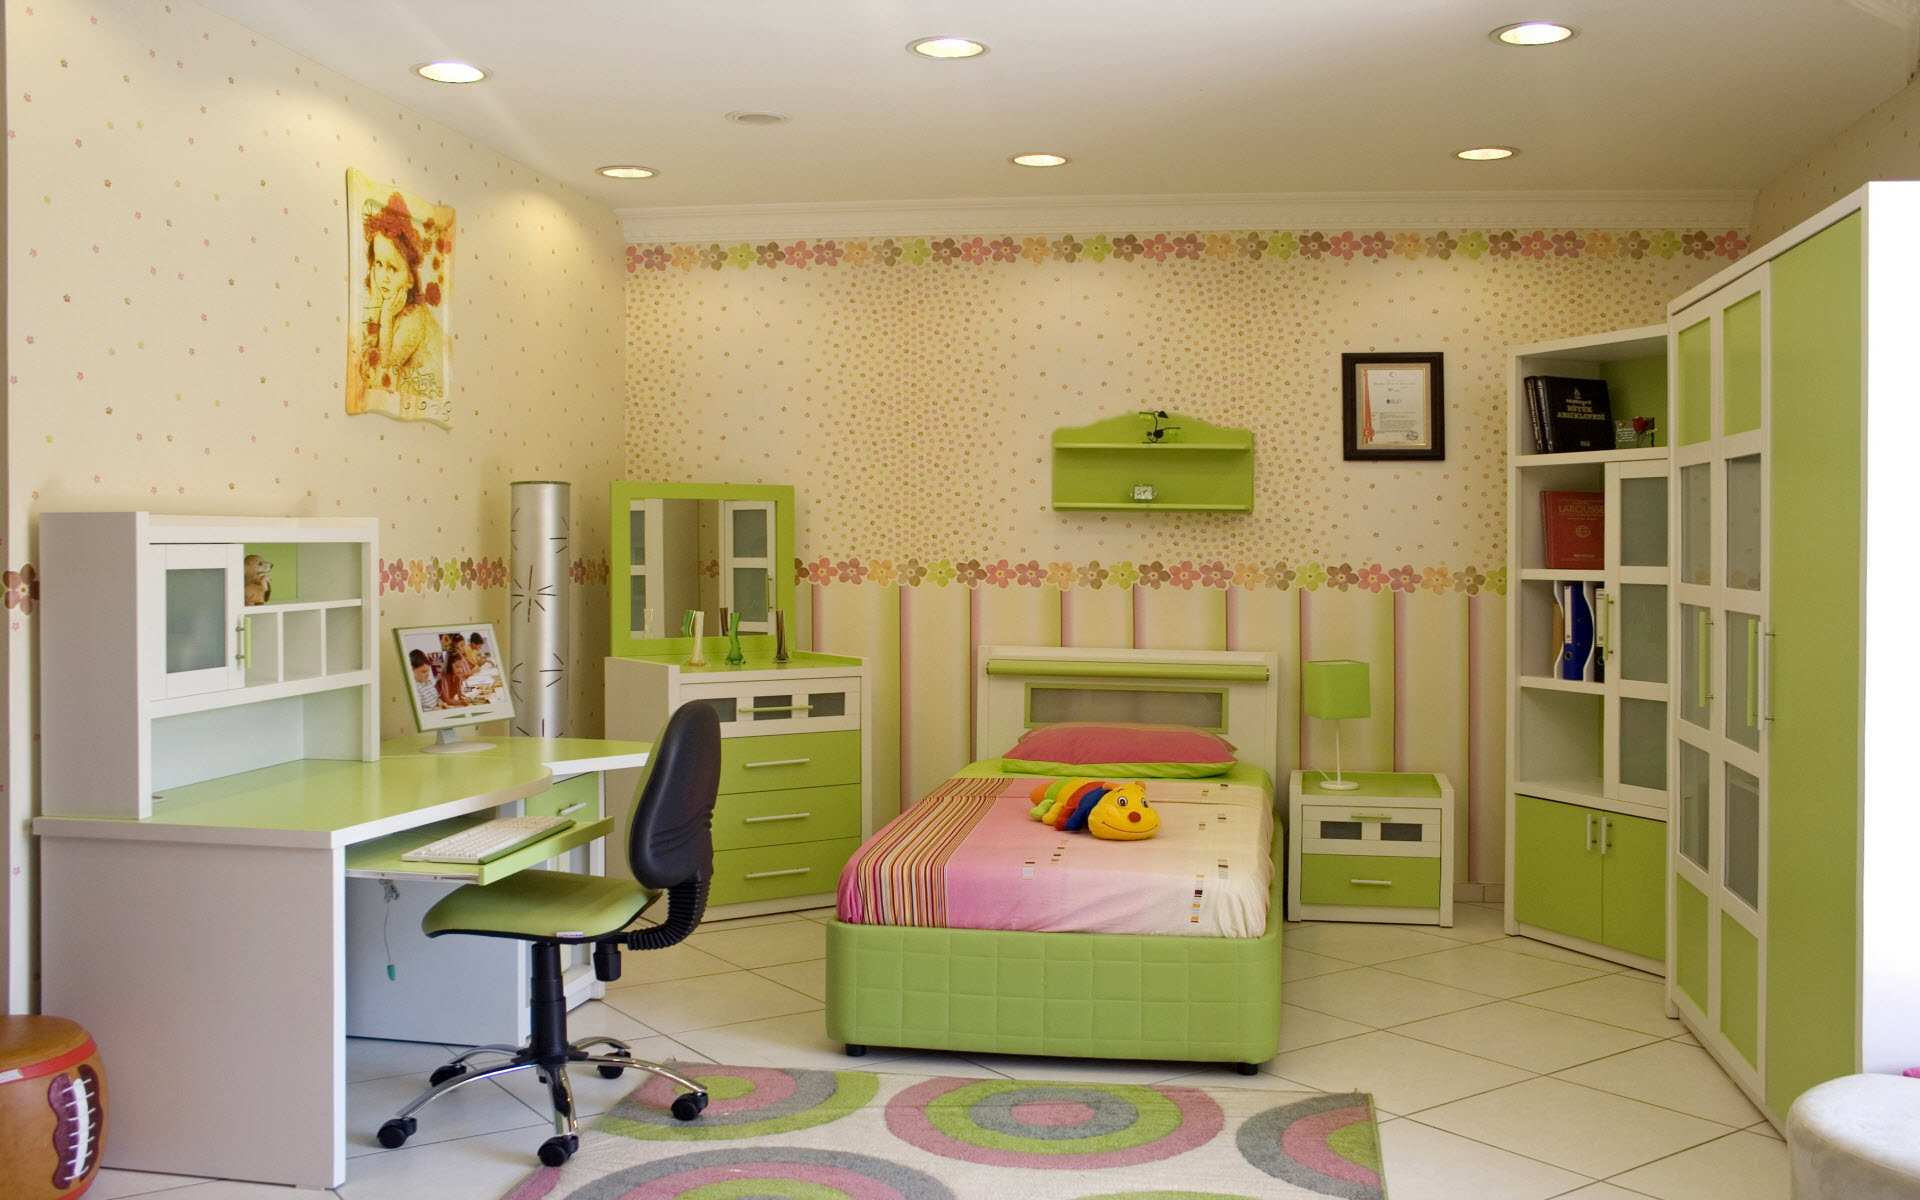 Kids room design apartments i like blog for Best home interior design